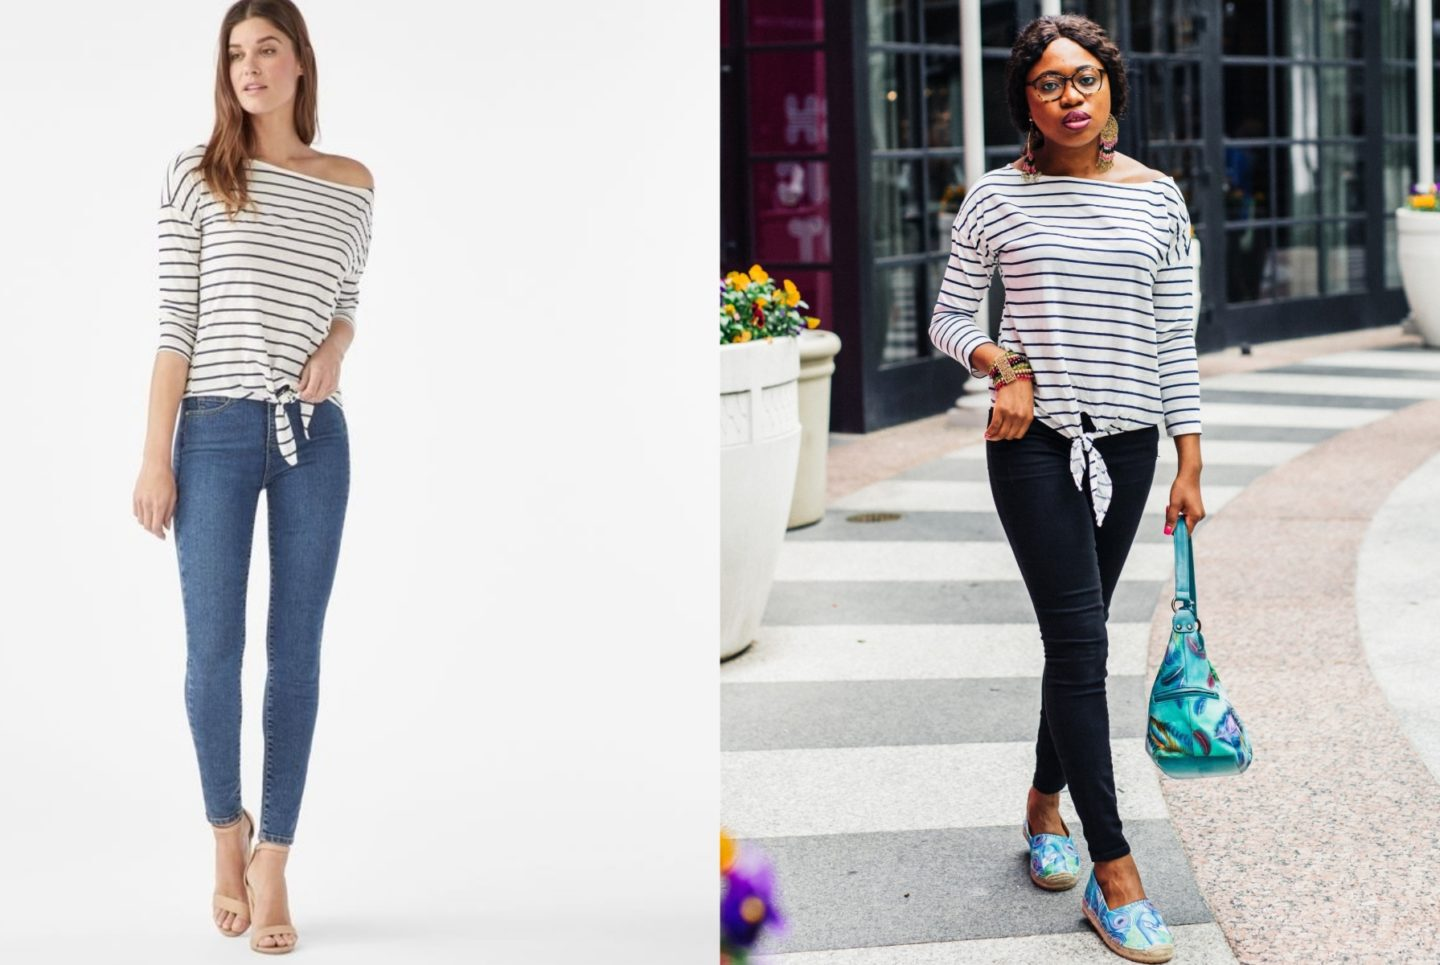 This is my honest review after spending my hard-earned money shopping for dresses and shoes on JustFab. Is JustFab legit or scam? A side by side comparing wearing a JustFab Slouchy Tie Top.